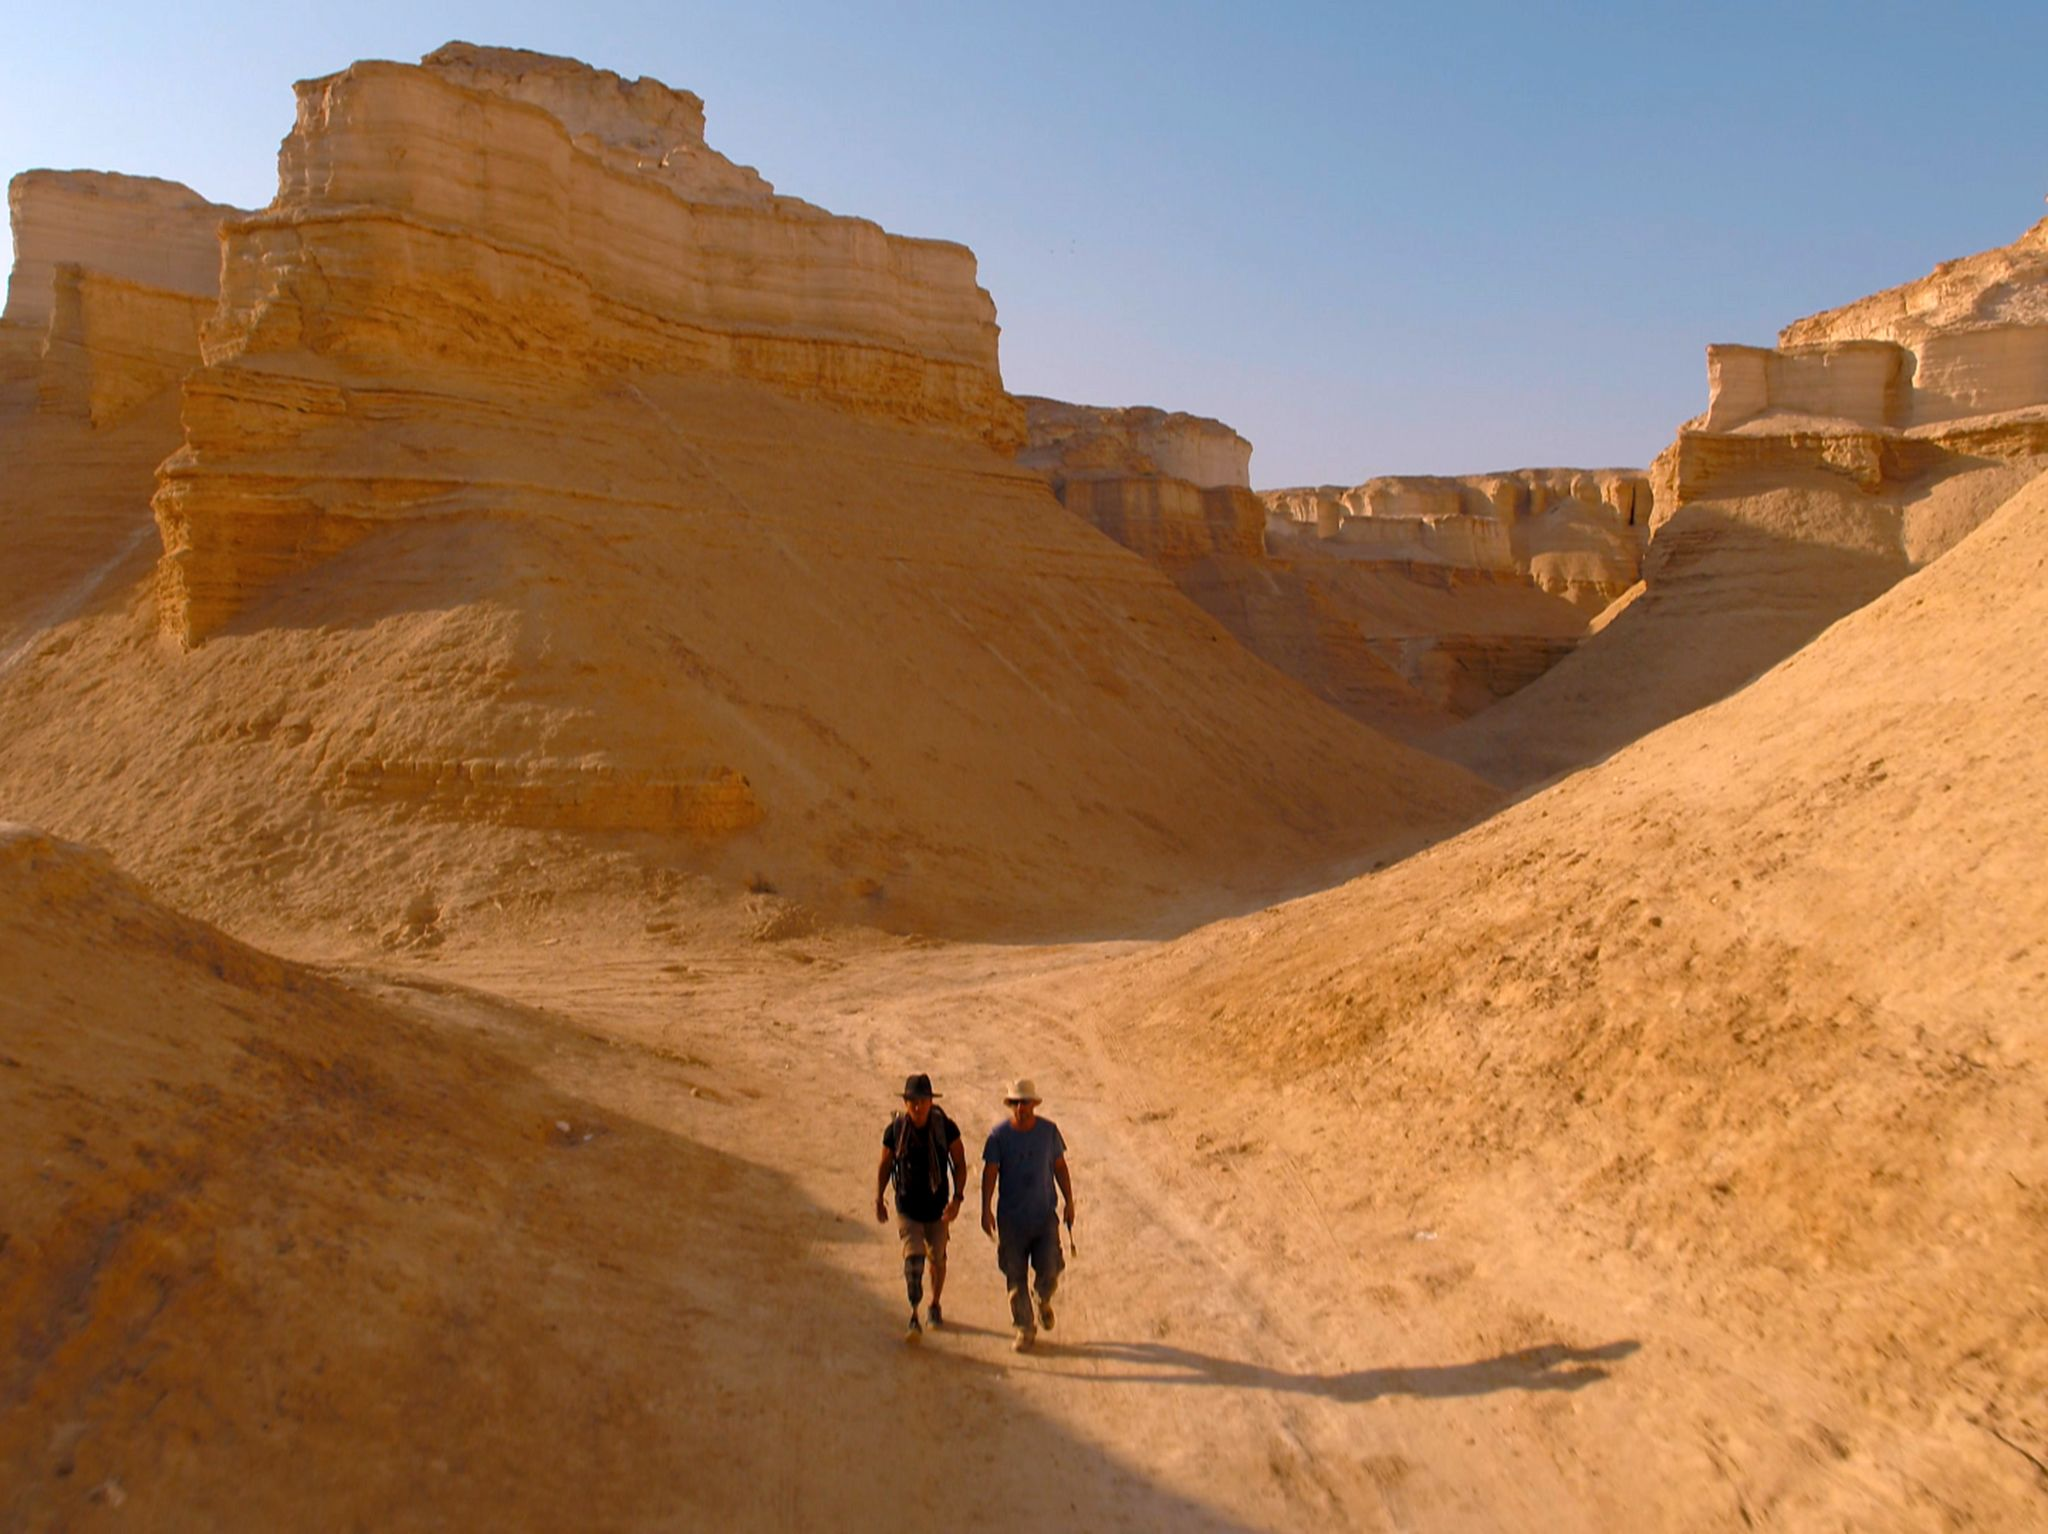 Israel:  Albert Lin and Dr. Adi Torfstein walking through canyon in the Dead Sea Rift valley. ... [Photo of the day - December 2019]